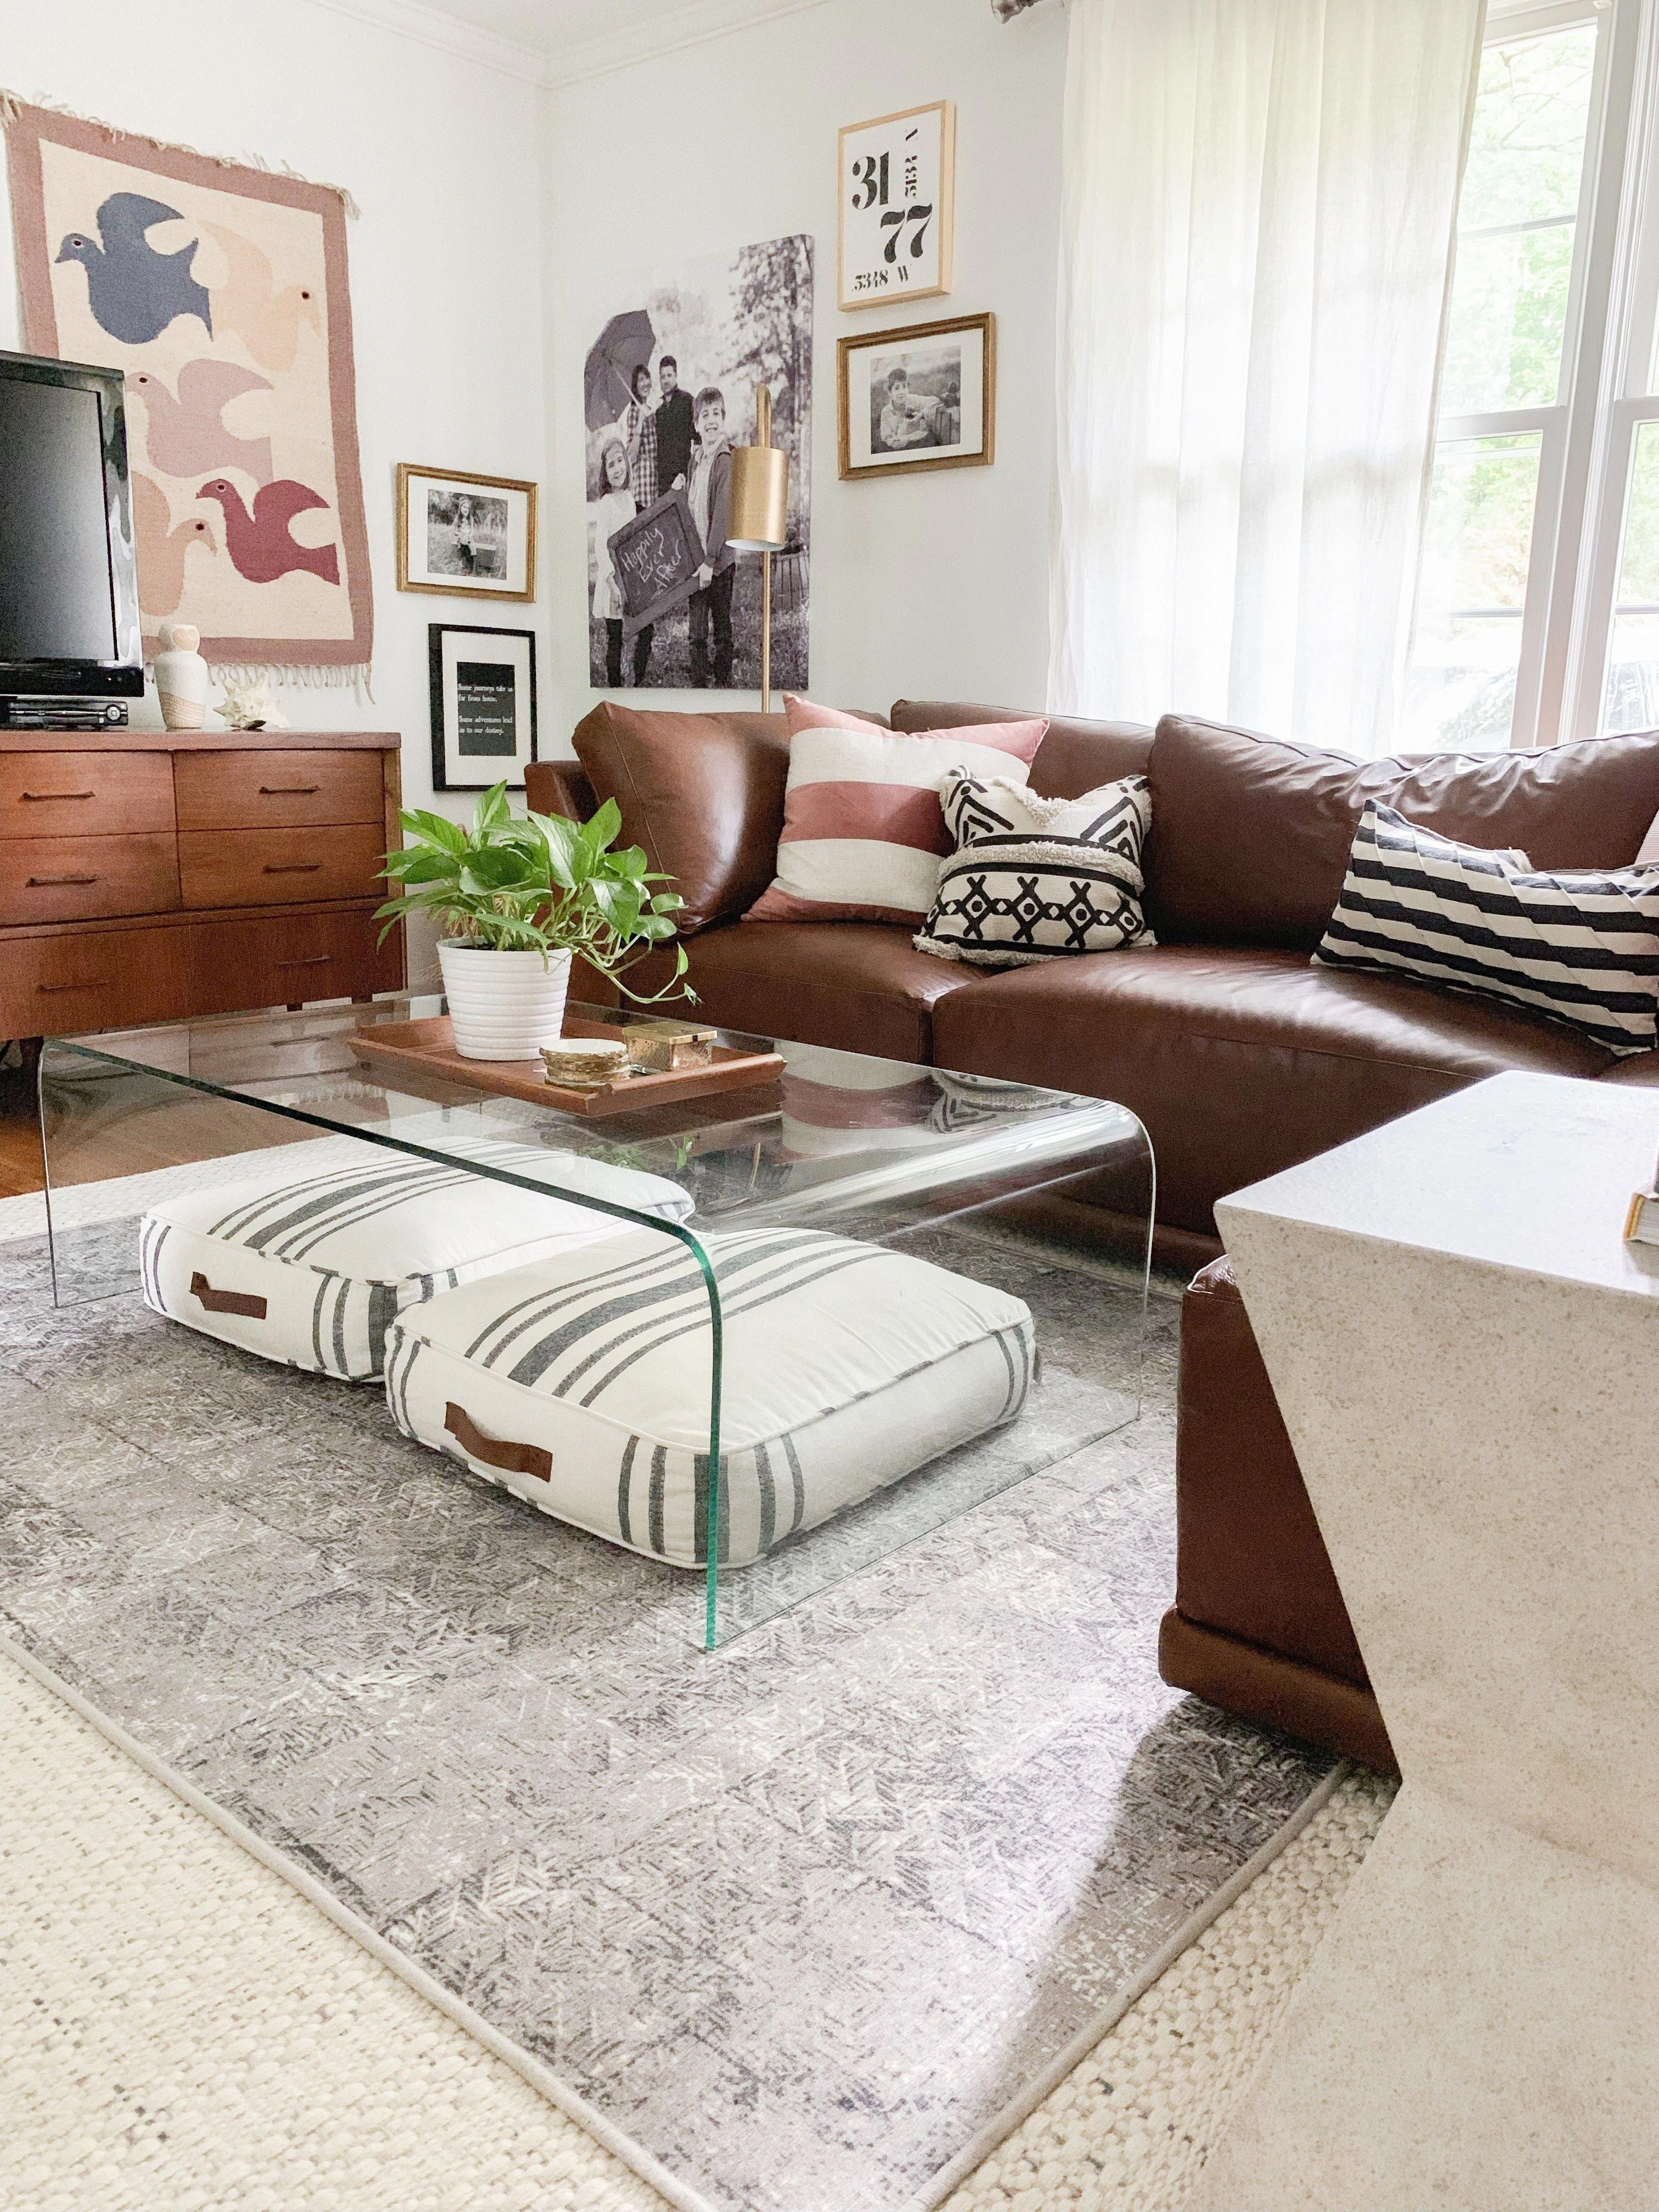 Eclectic Vintage Modern Living Room with thrifted finds ...